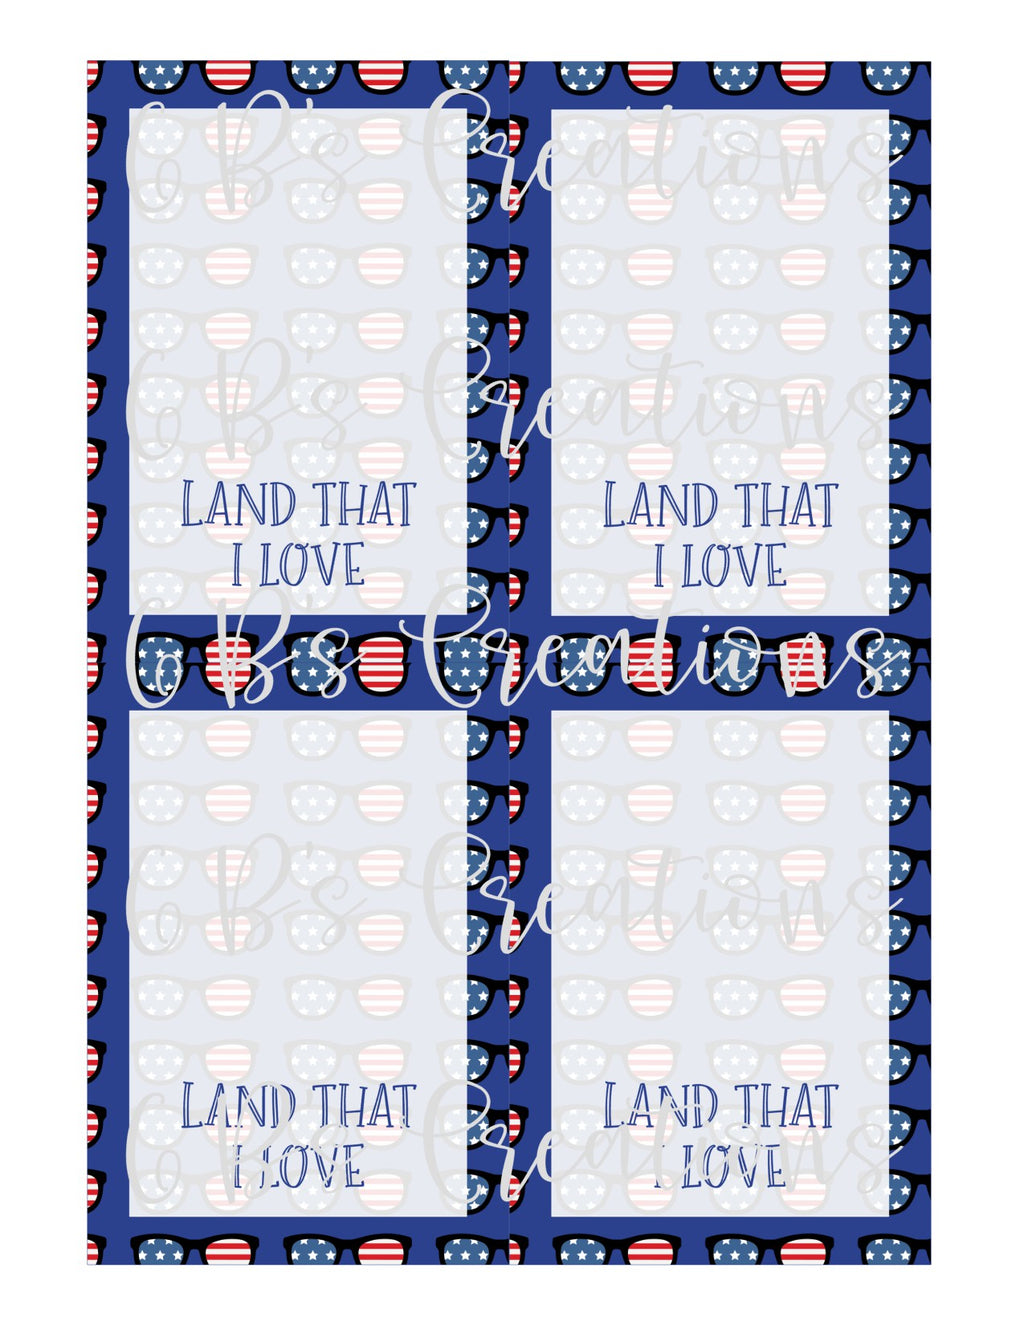 4th of July (Land that I love) Printable Cookie Card